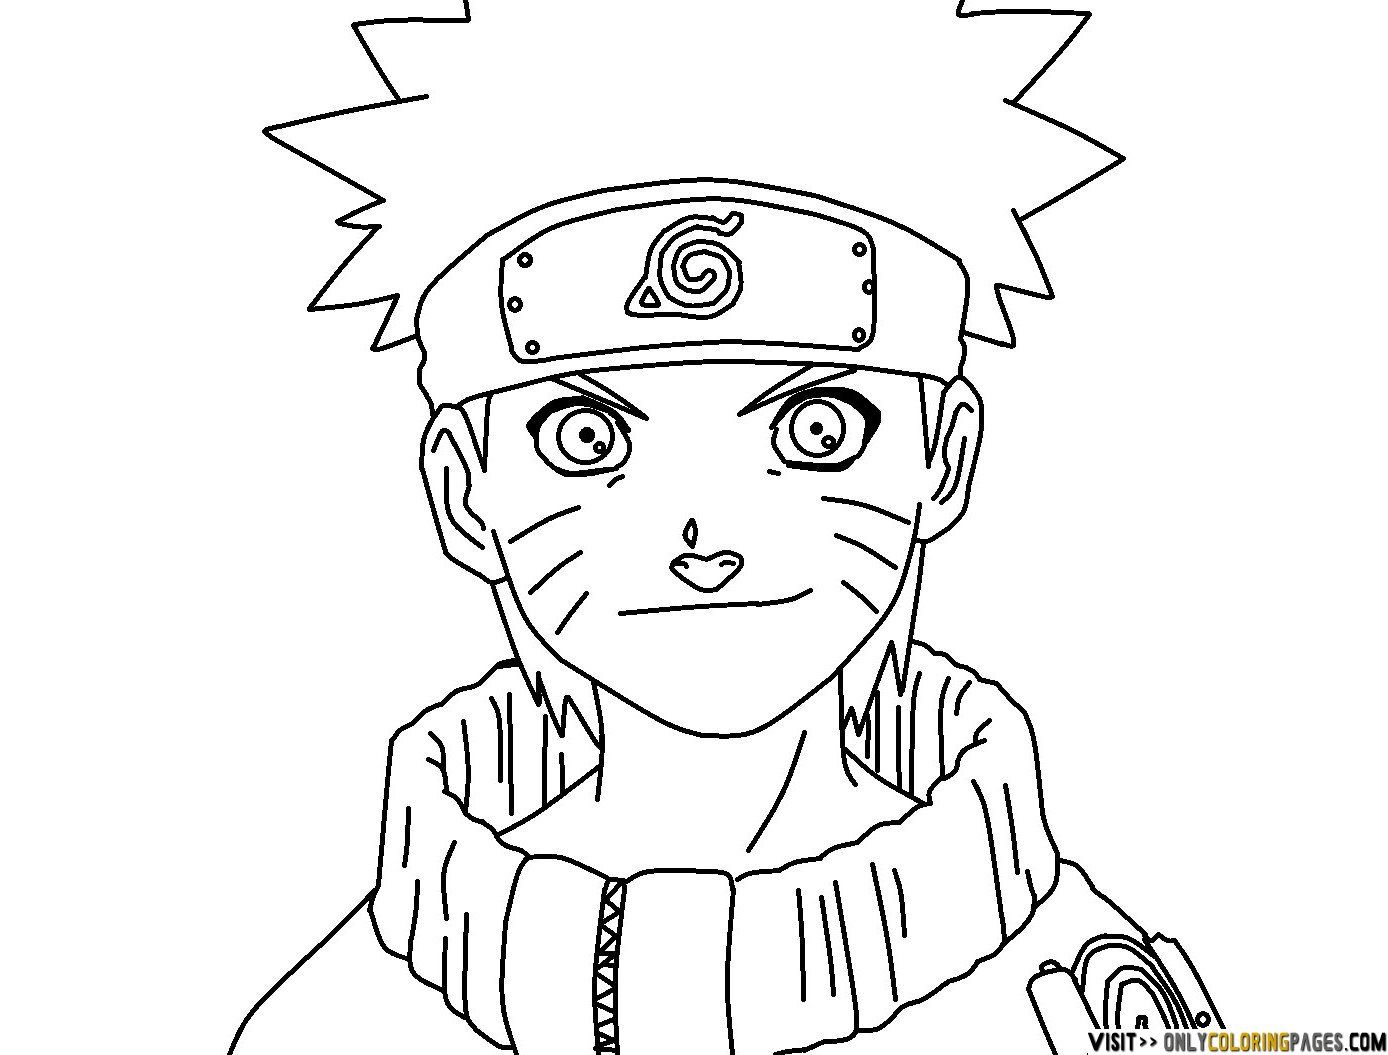 550 Free Printable Naruto Coloring Pages For Adults , Free HD Download